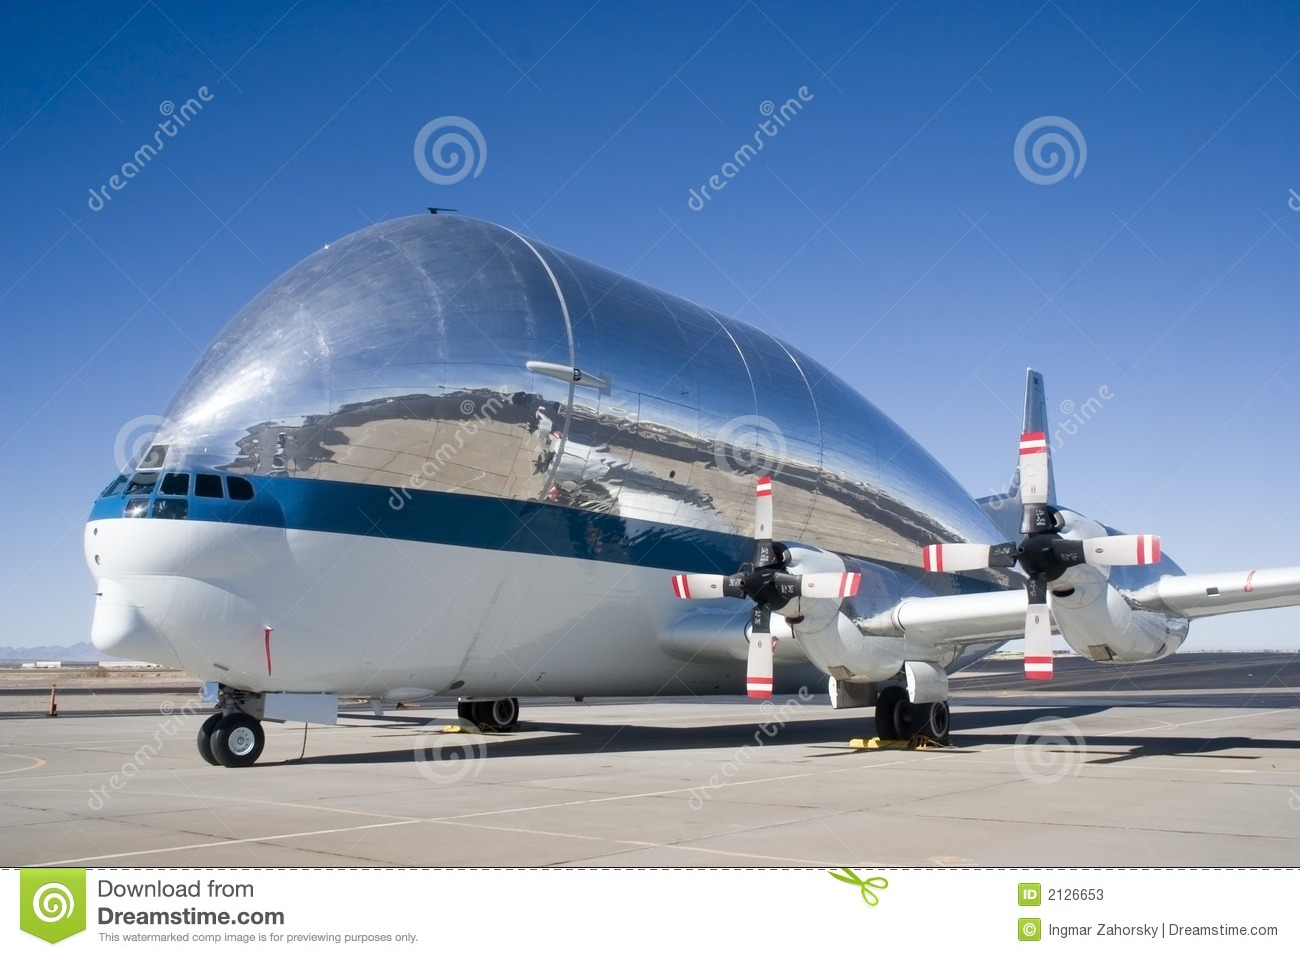 The Super Guppy is a large, wide-bodied cargo aircraft used for ...